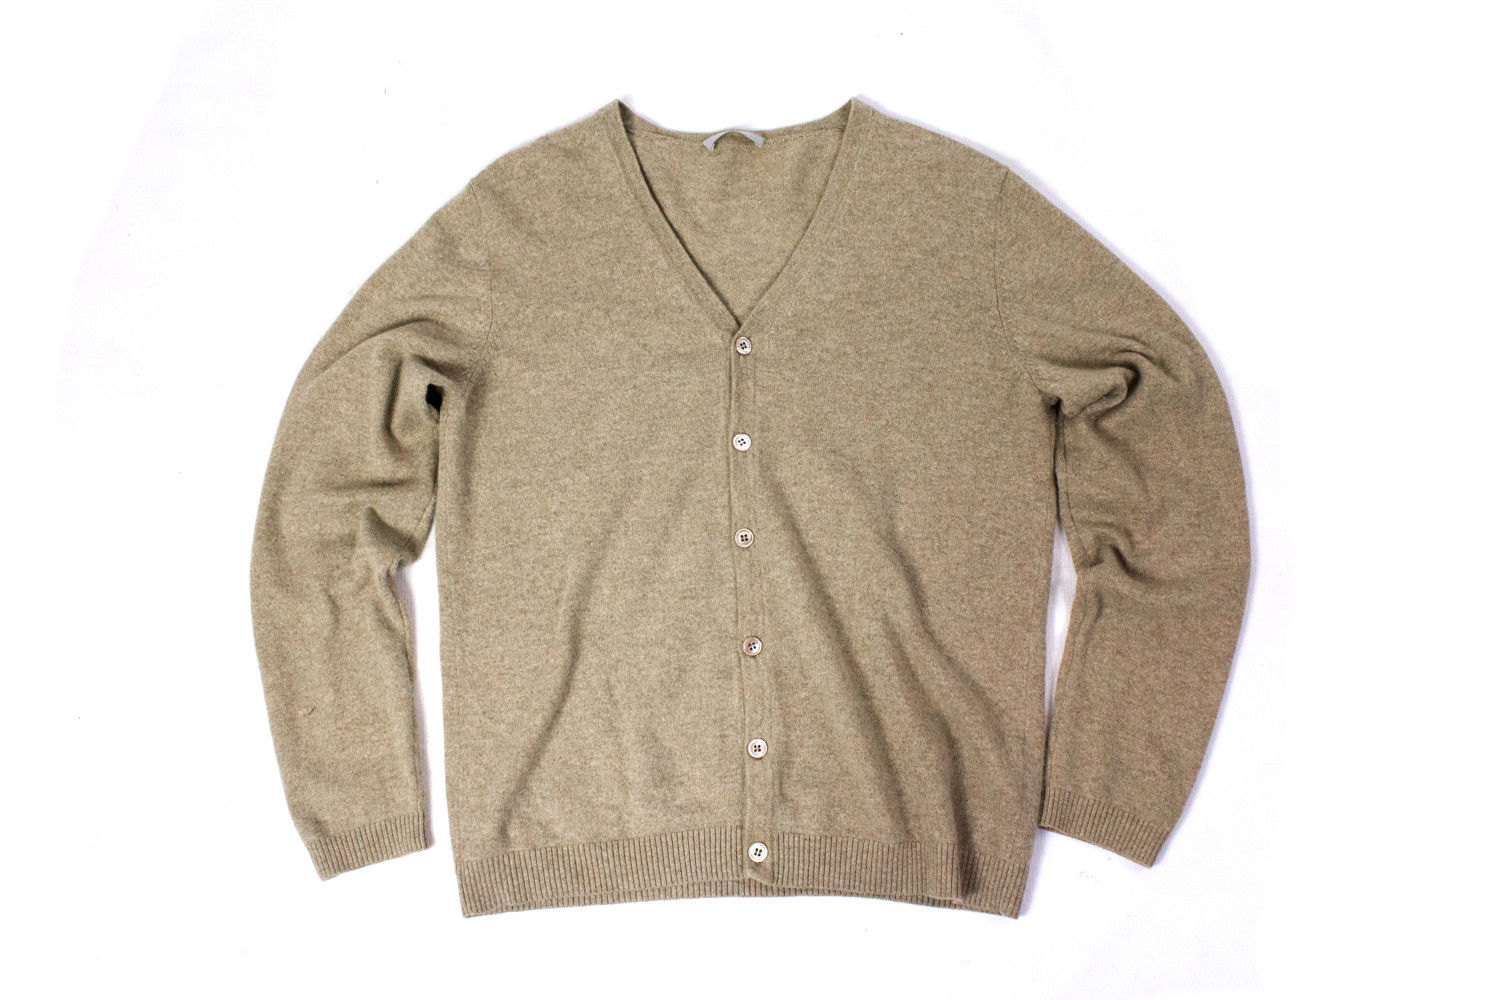 STRENESSE by Gabriele Strehle Light Brown Cashmere Cardigan, XL - secondfirst